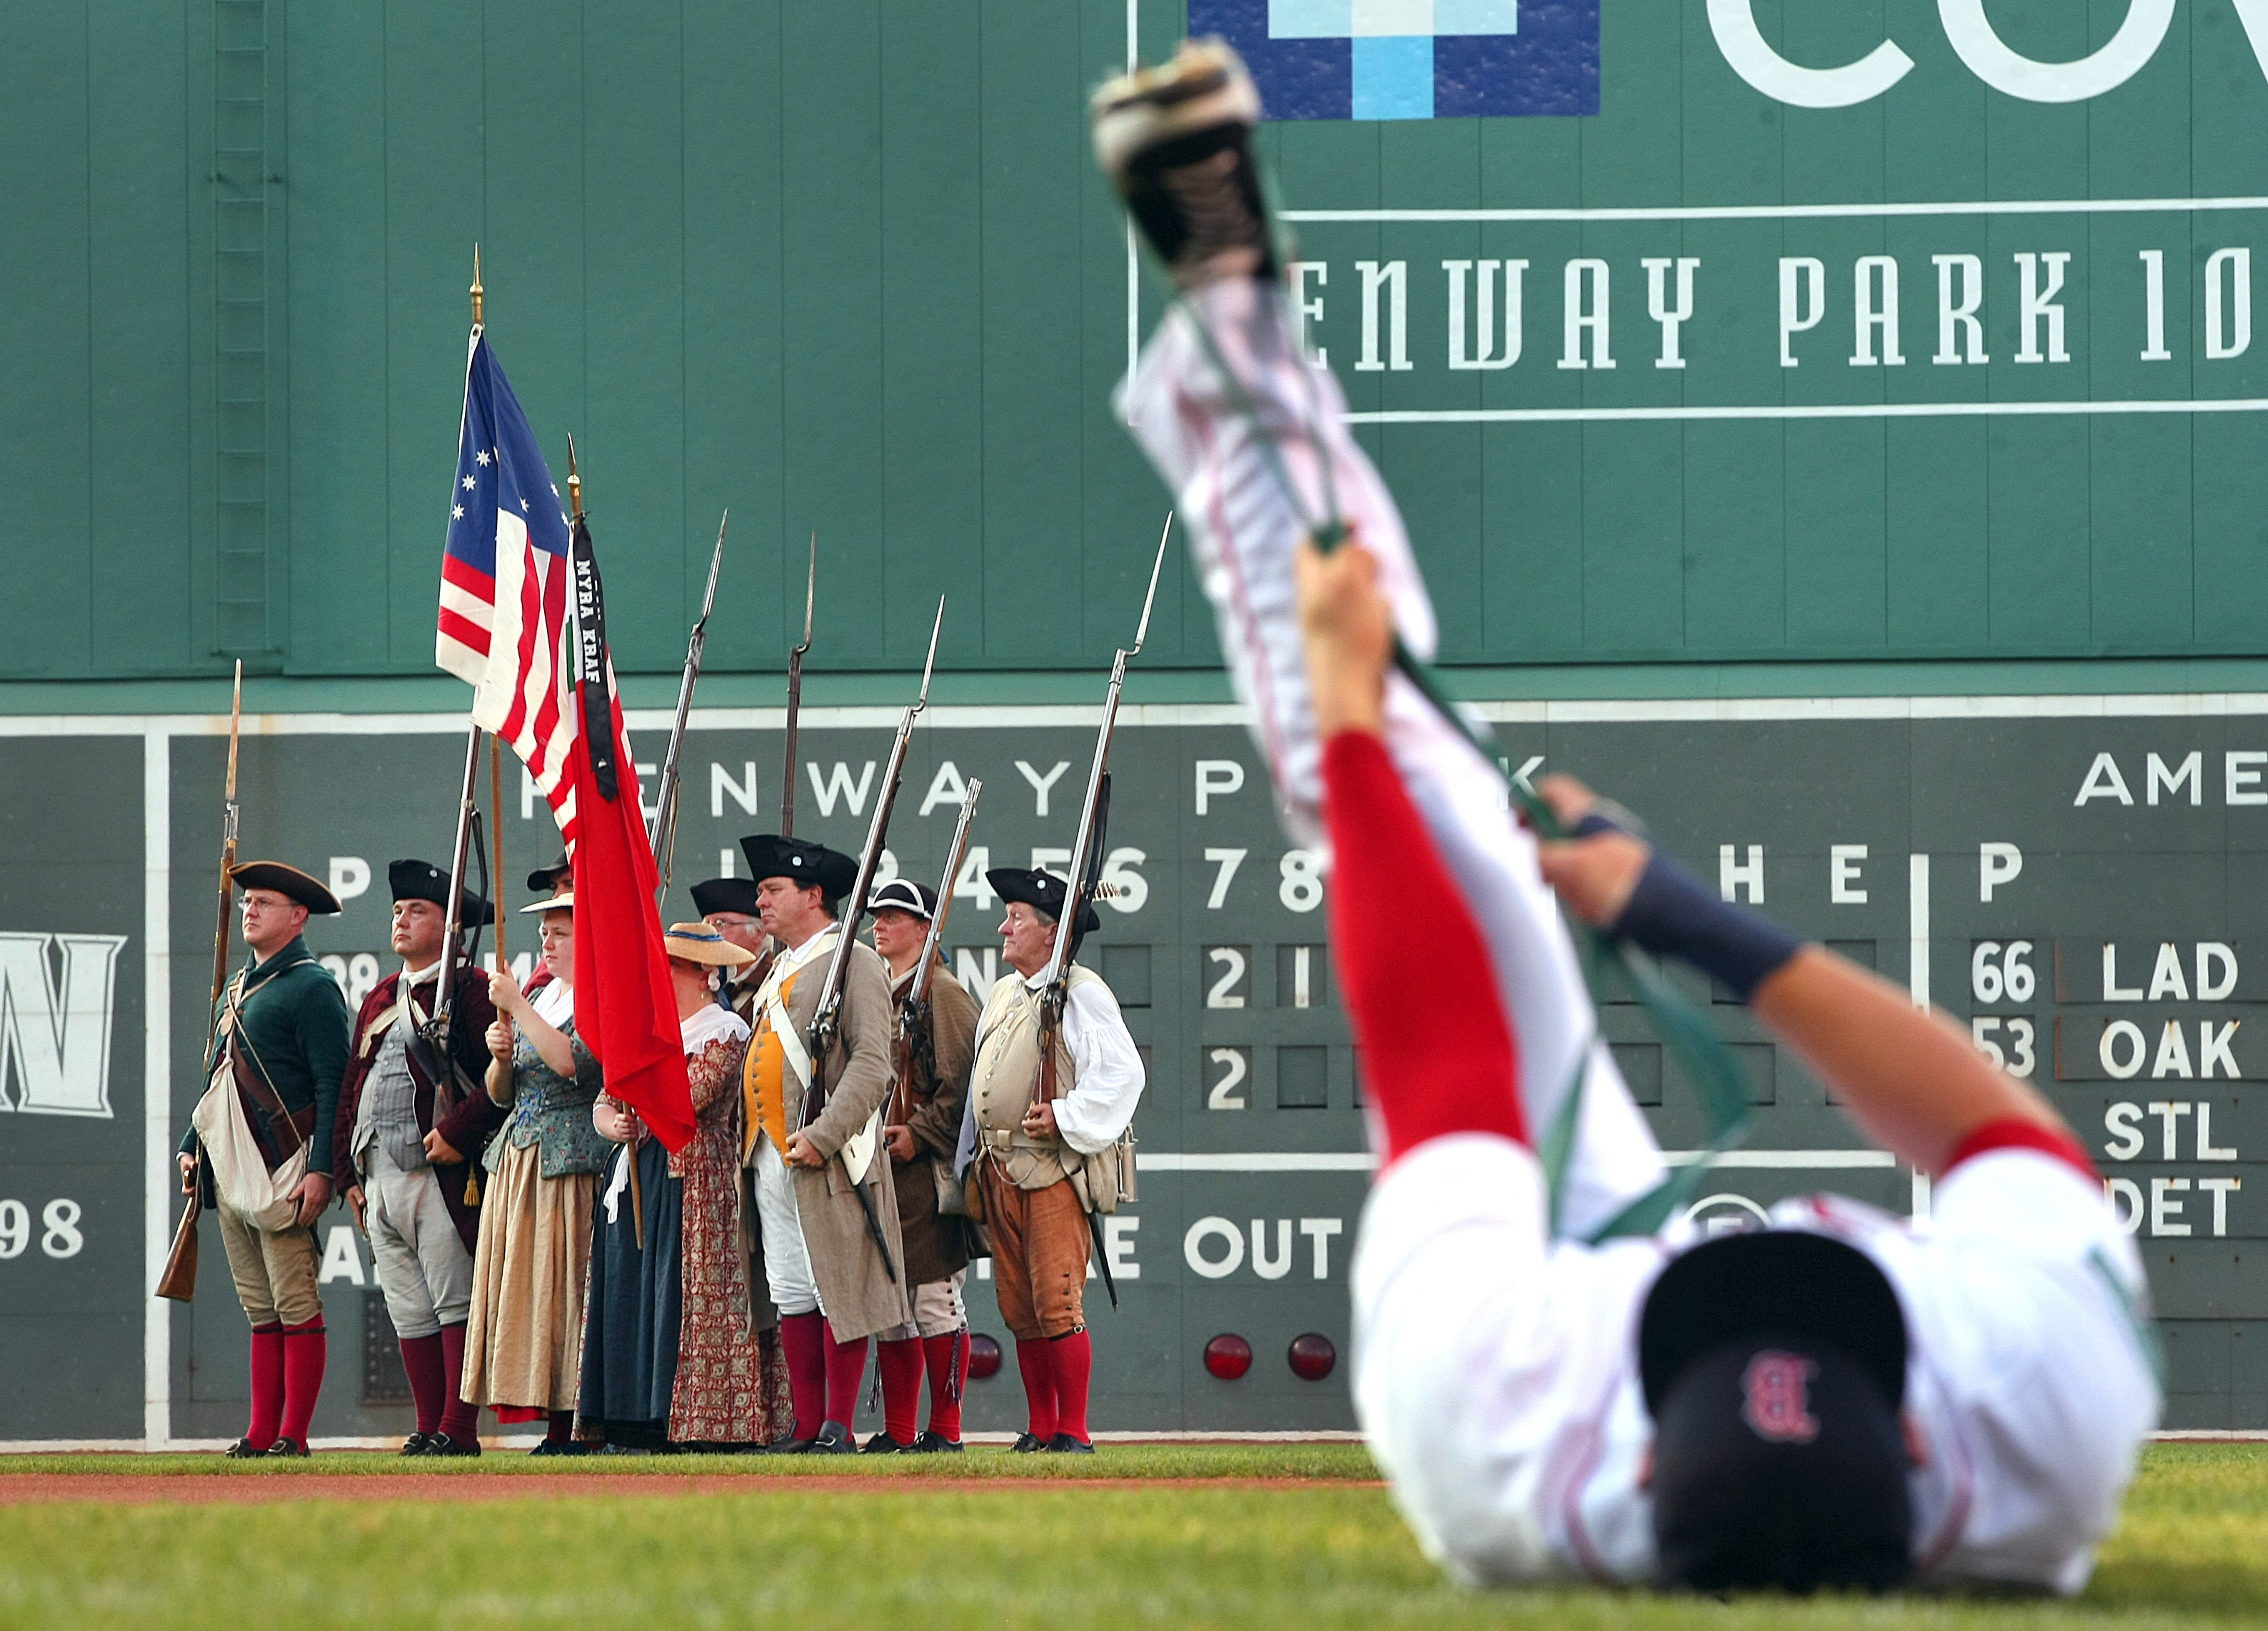 June 21: Red Sox 6, Marlins 5 Red Sox center fielder Ryan Kalish stretched before the game as Revolutionary War militia line the outfield waiting for the start of the national anthem.